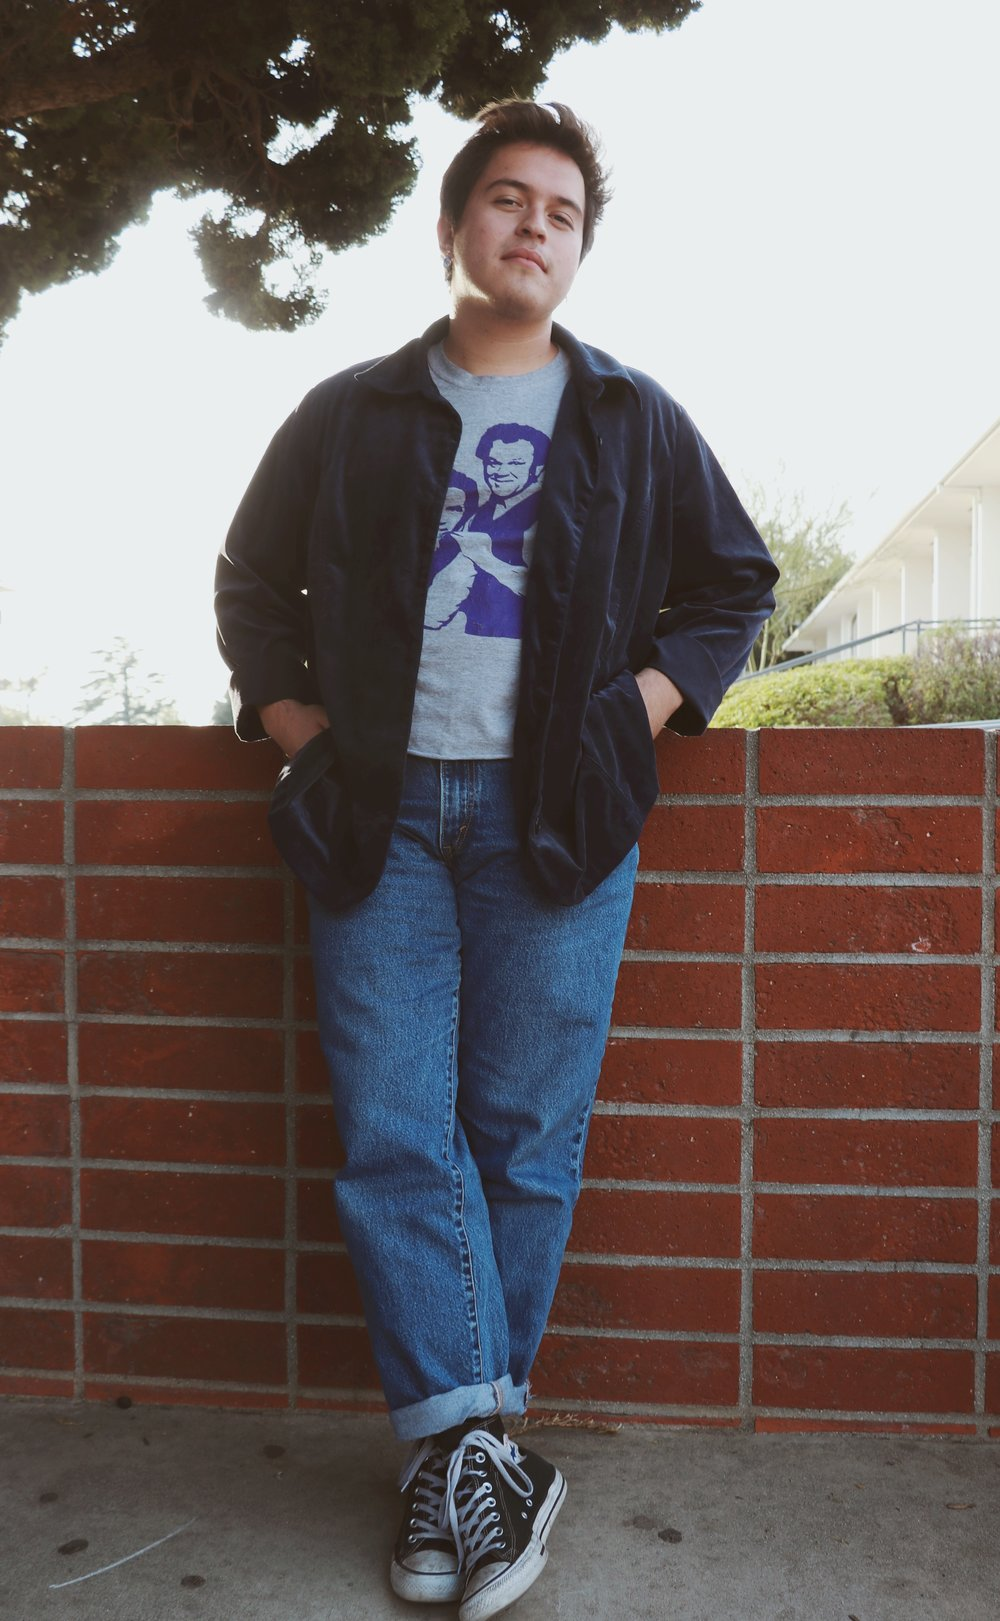 Chaffey student Hector Solorzano dresses casual in cuffed Levi jeans and a graphic tee, accessorized with Converse and a suede blazer, adding a chic twist.